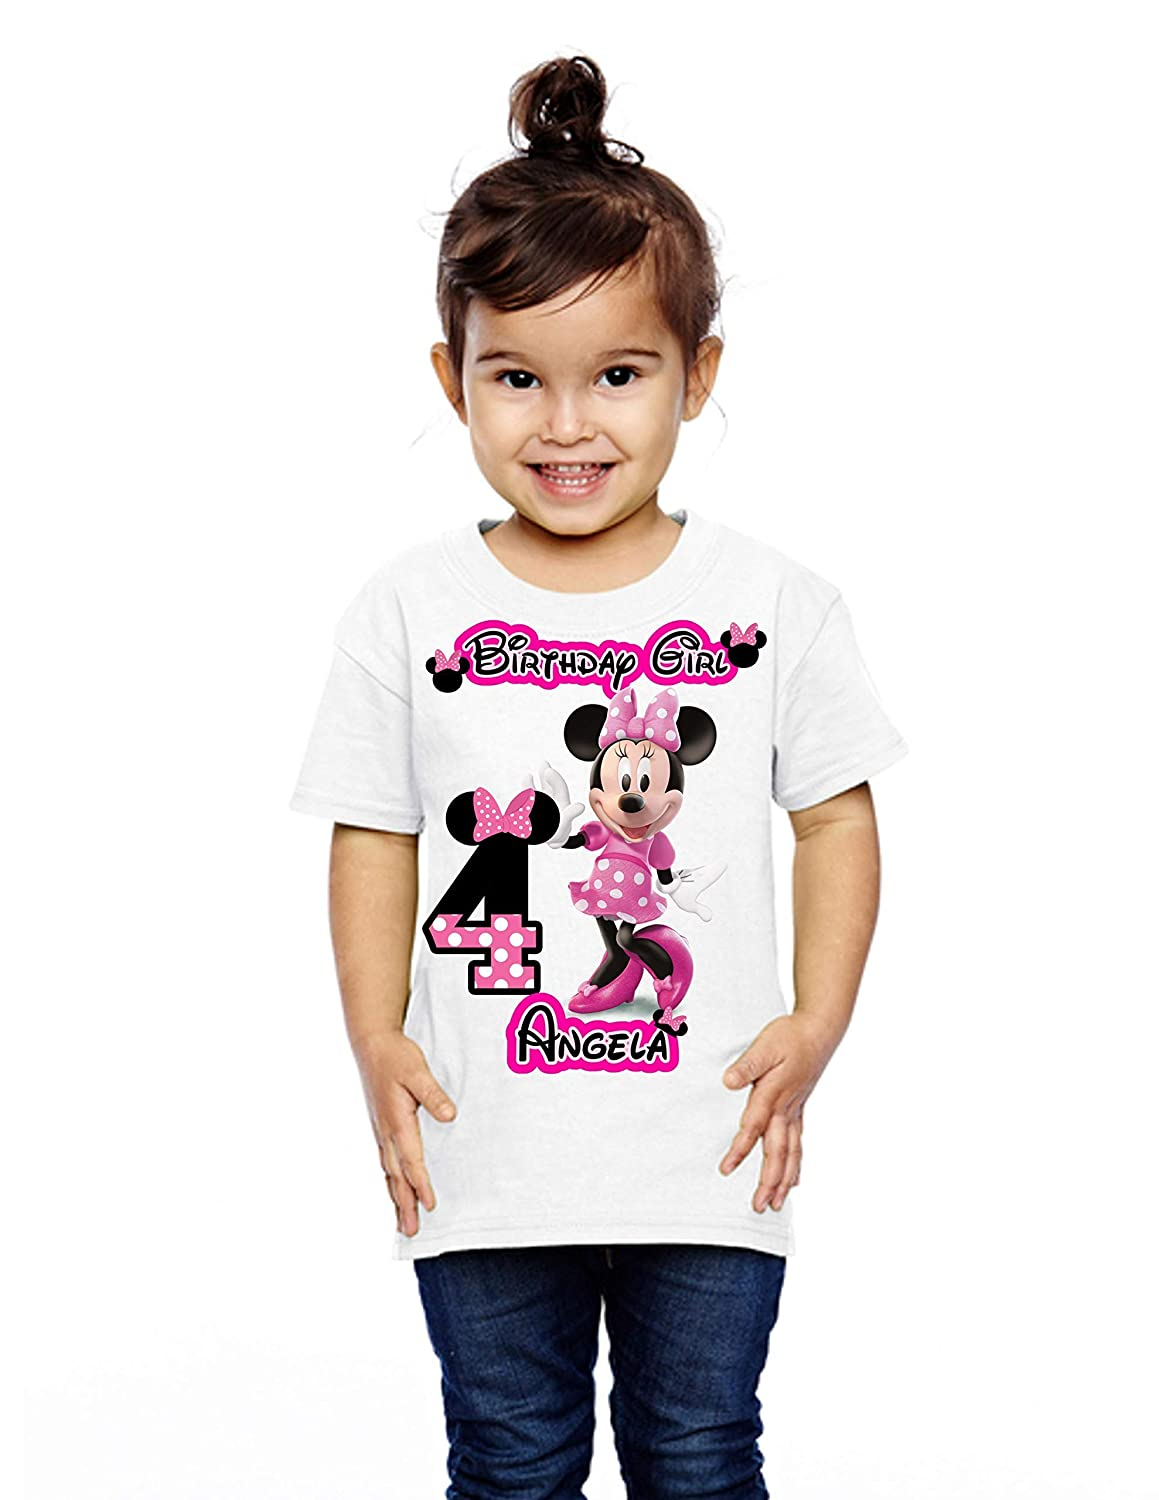 birthday gift Birthday Girl Personalized shirts Gift for girl Minnie Mouse party shirts Minnie party shirts Shirts Minnie Mouse